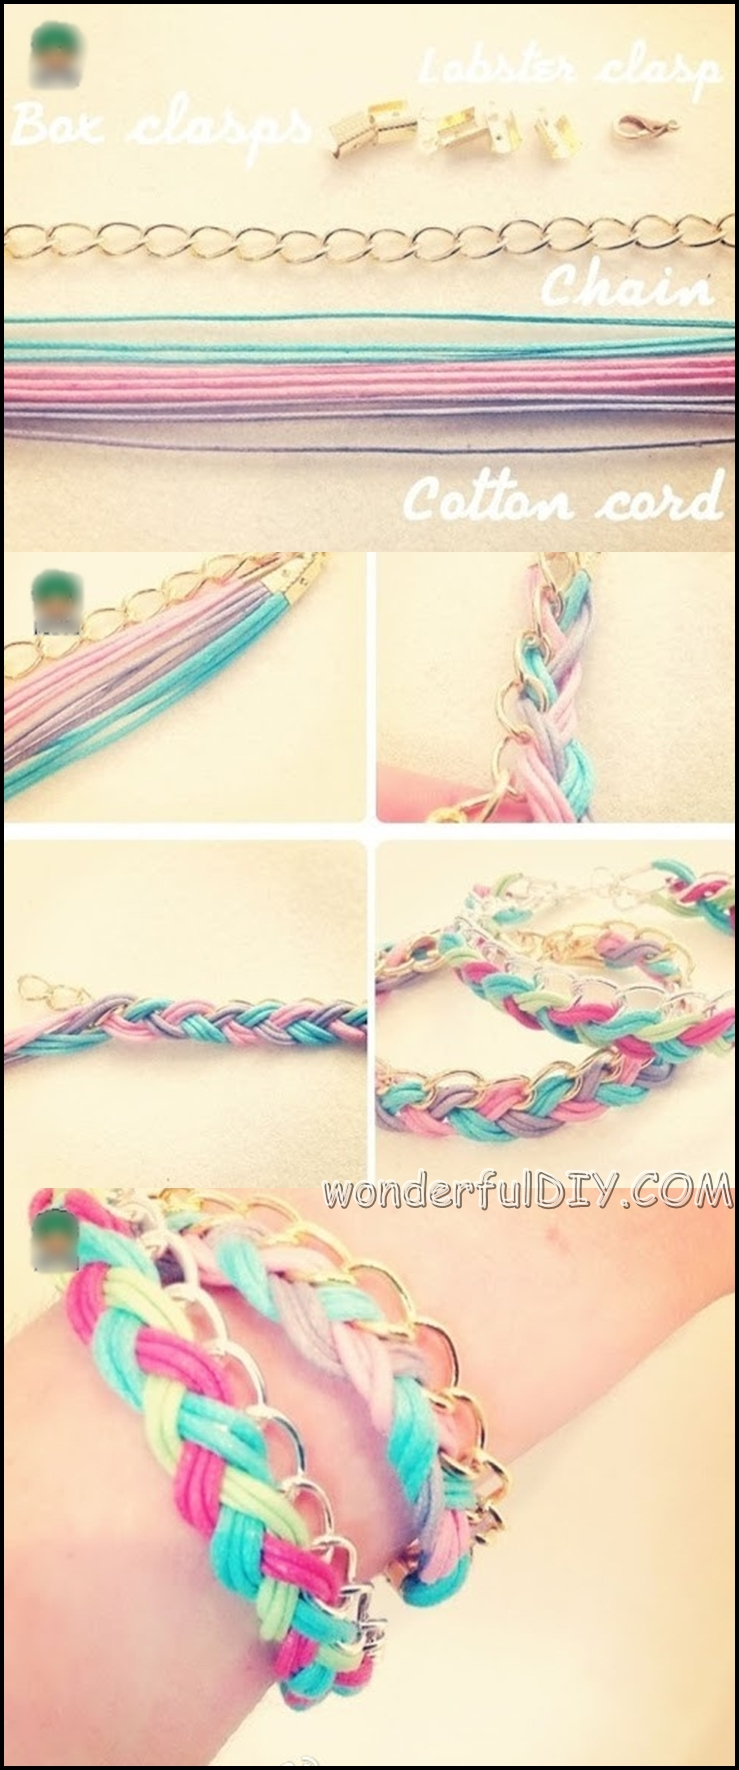 colorful braid bracelet m w Wonderful DIY colorful braided bracelet